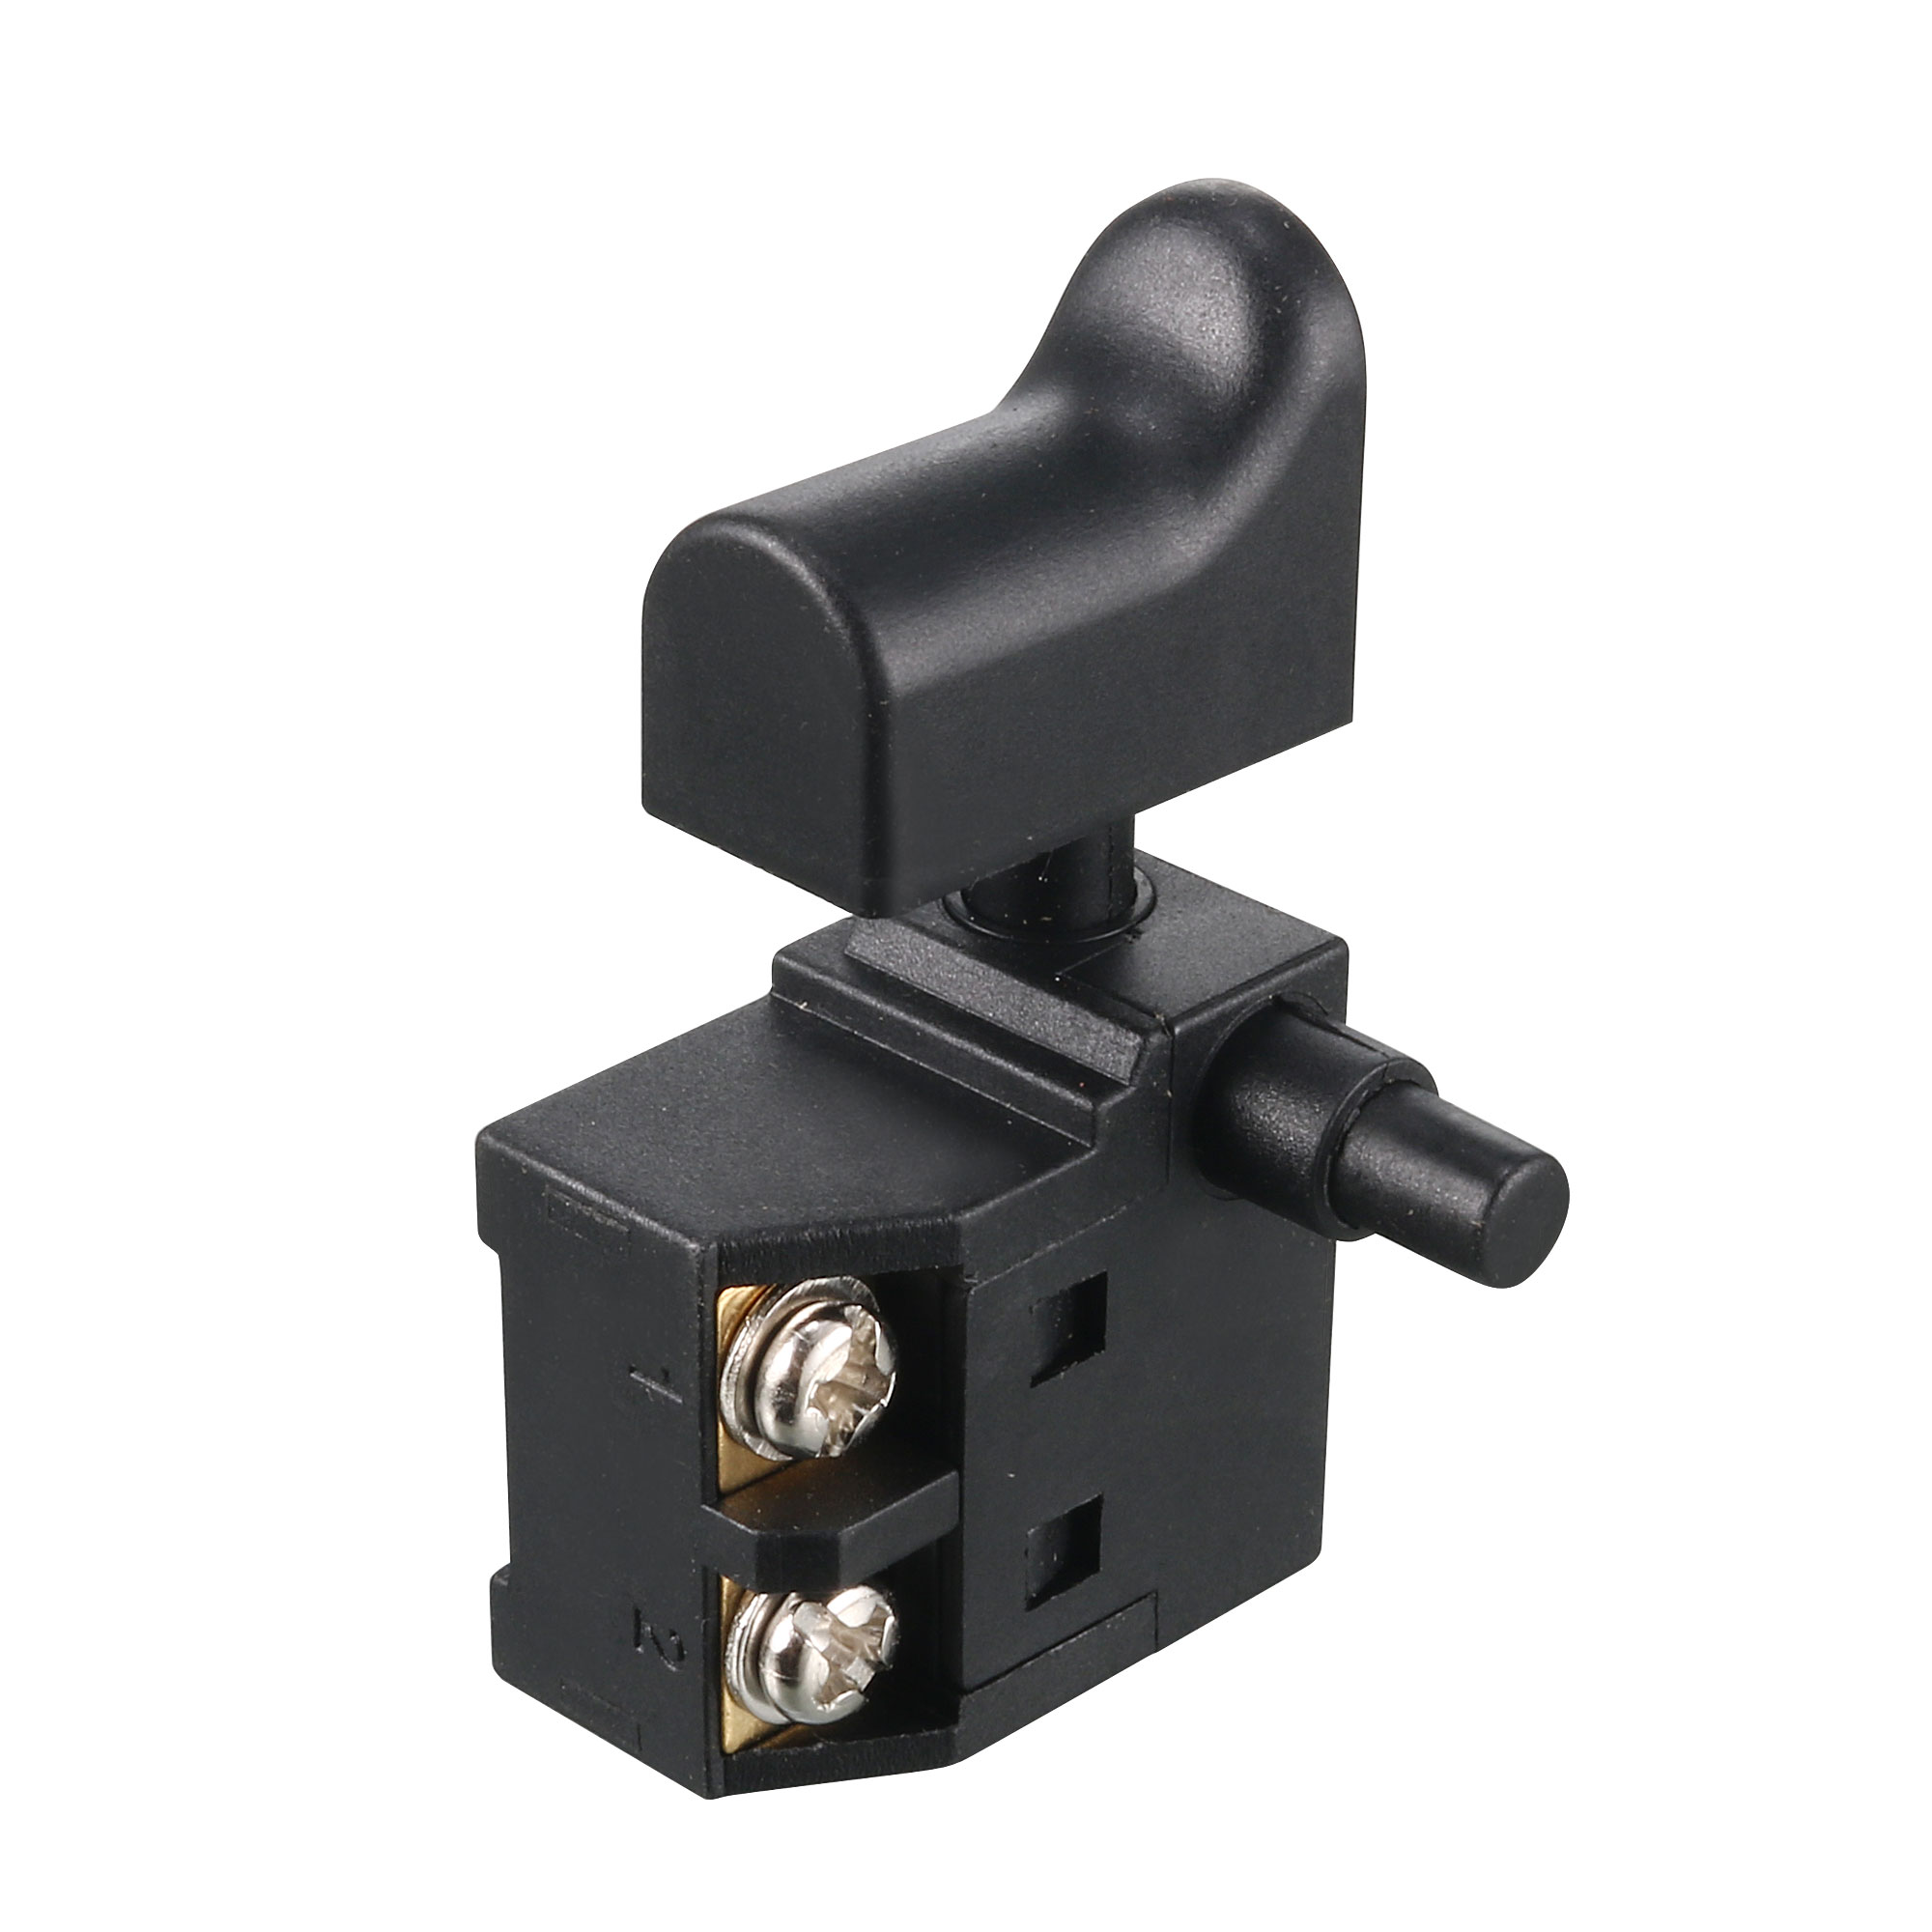 AC 250V 6A SPST Lock on Electric Tool Part Trigger Switch